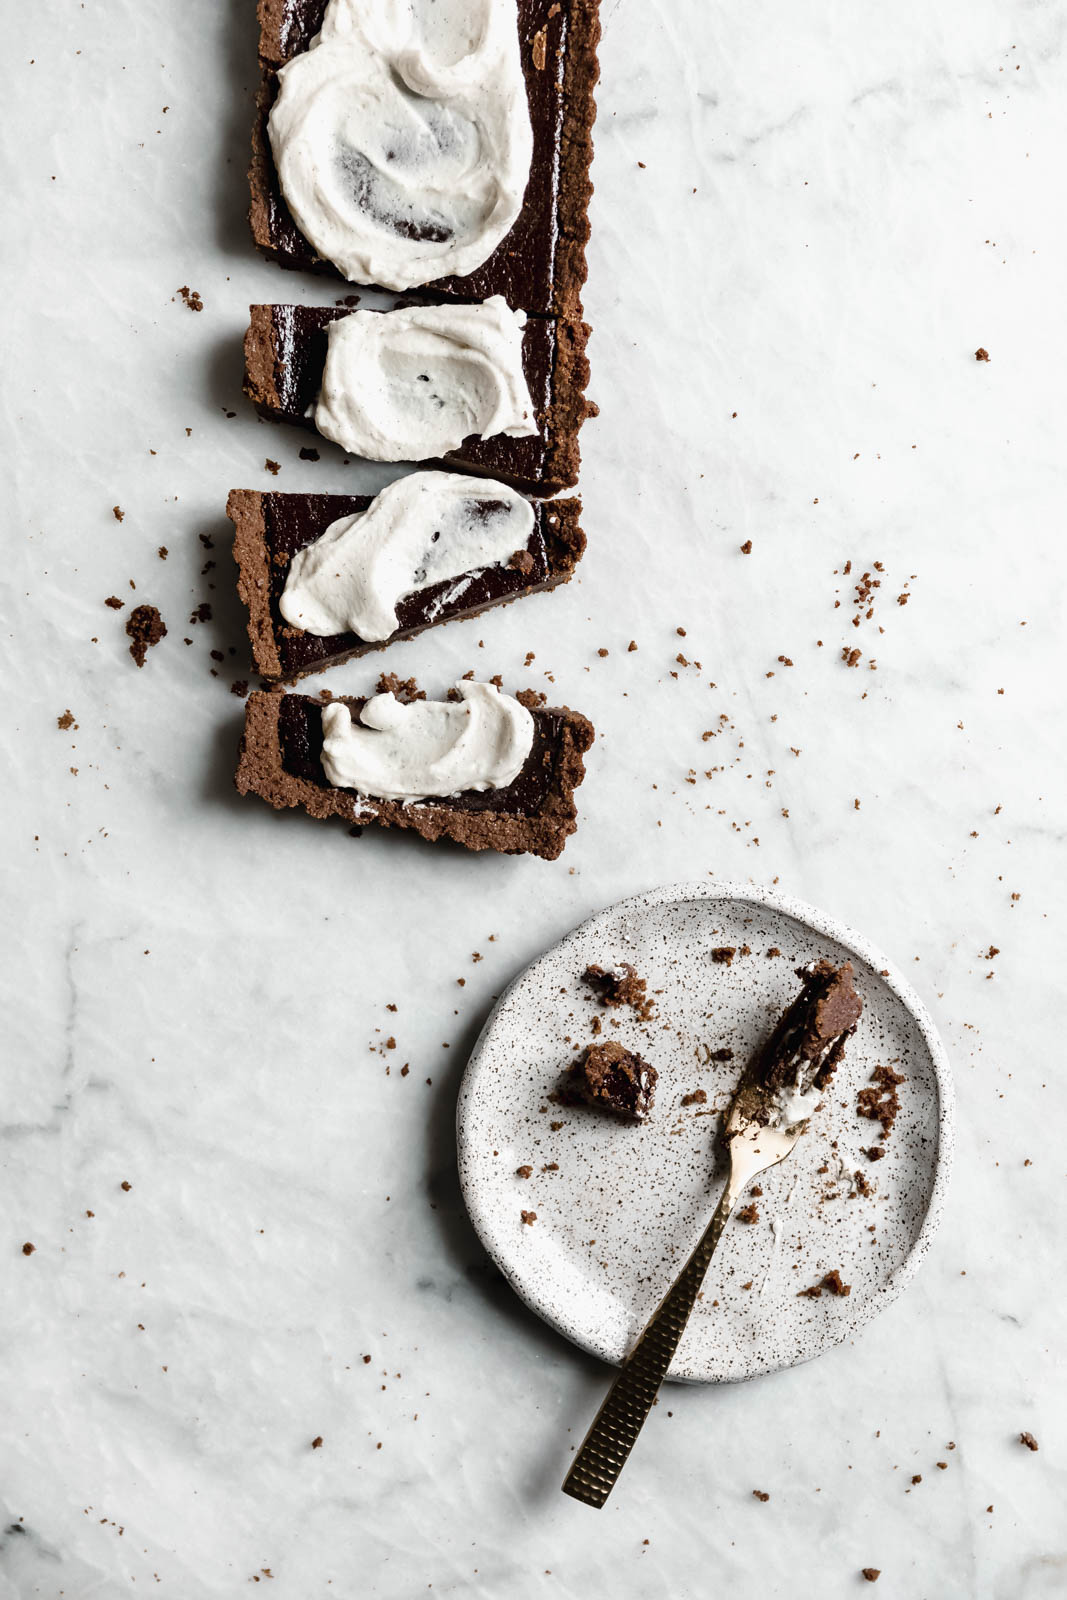 Mocha Chocolate Tart with Crème Fraîche Whipped Cream